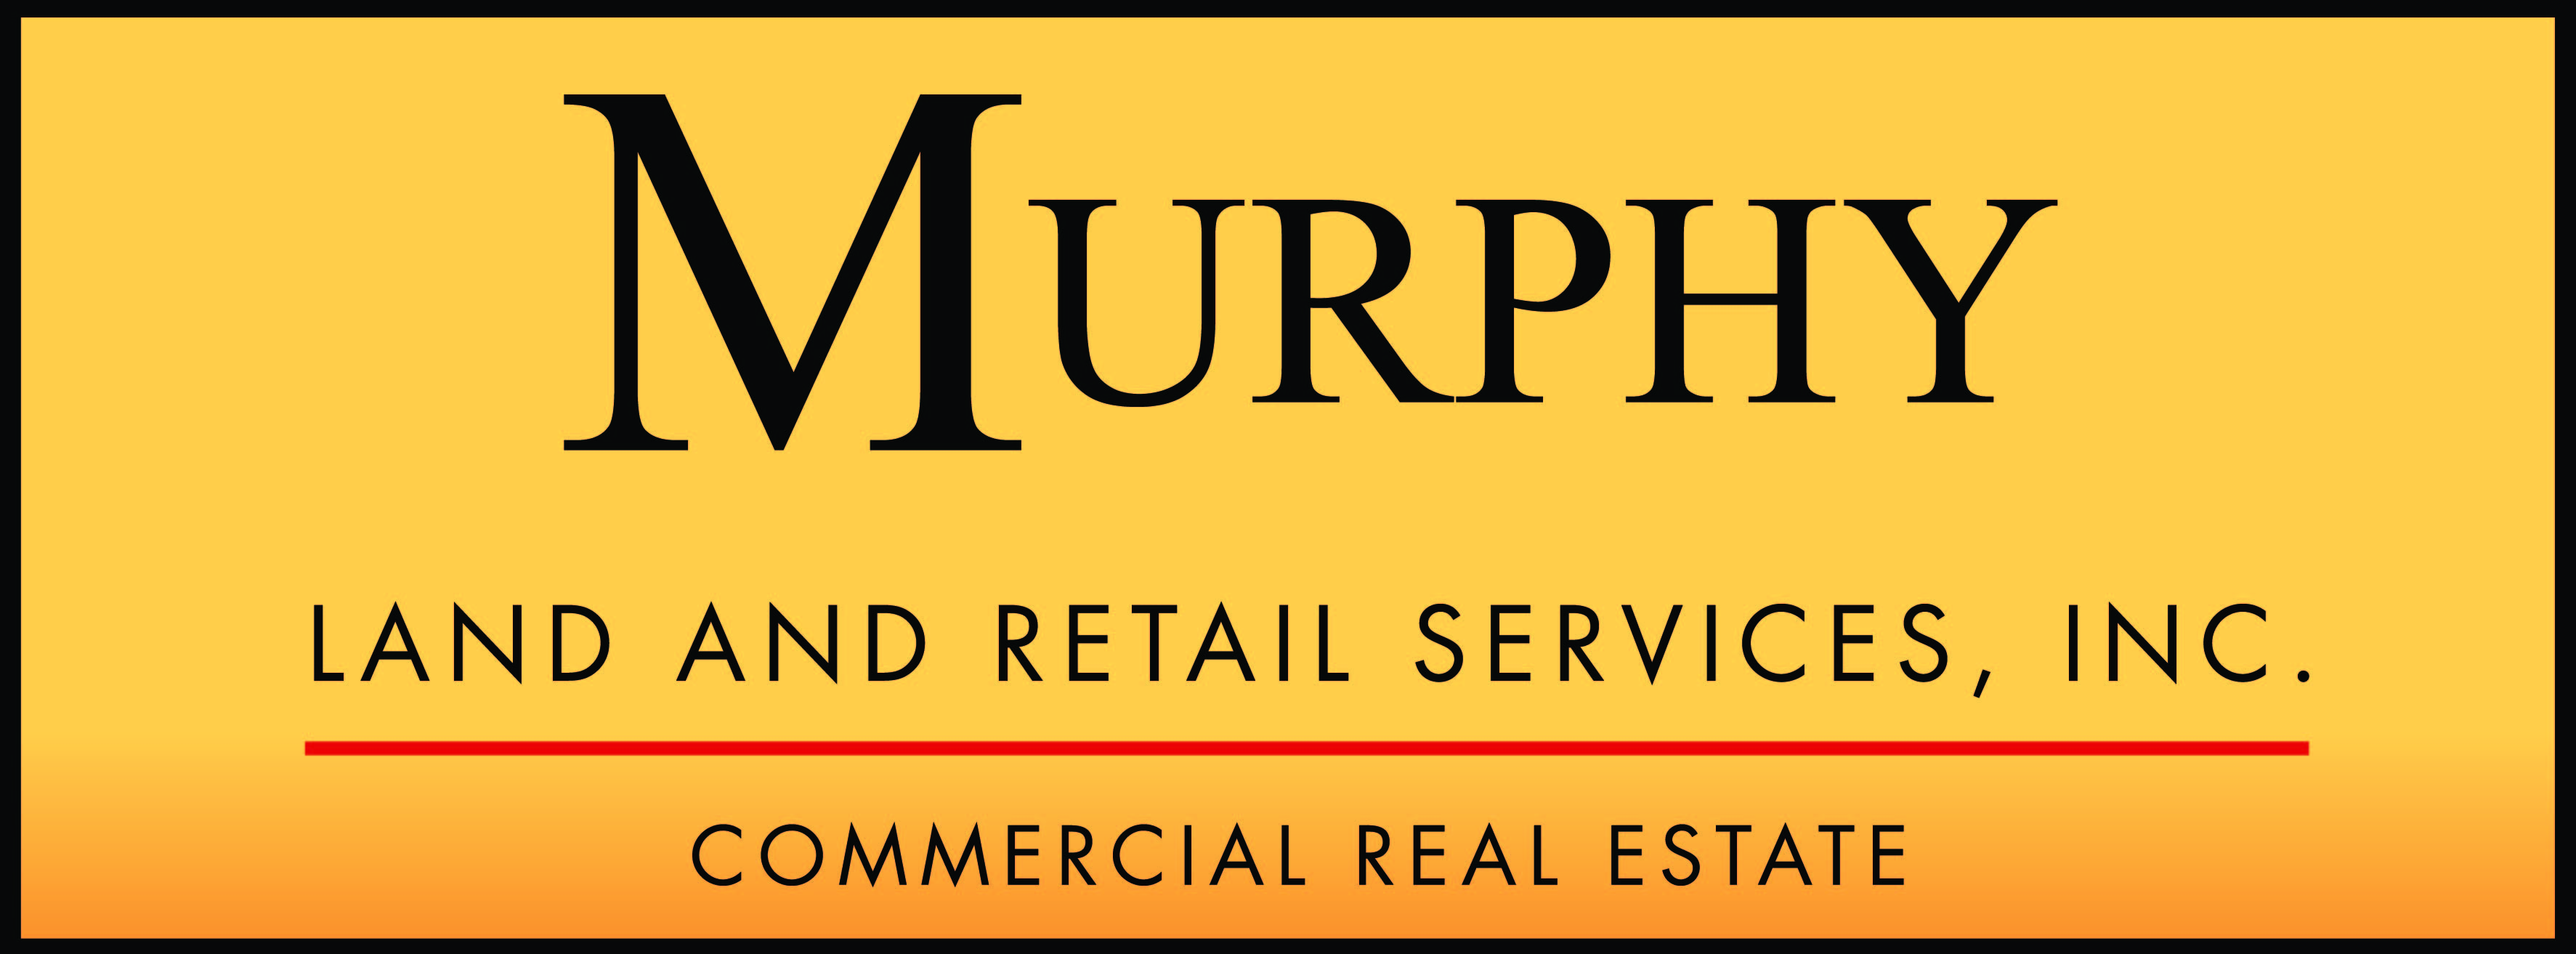 Murphy Land and Retail Services, Inc.